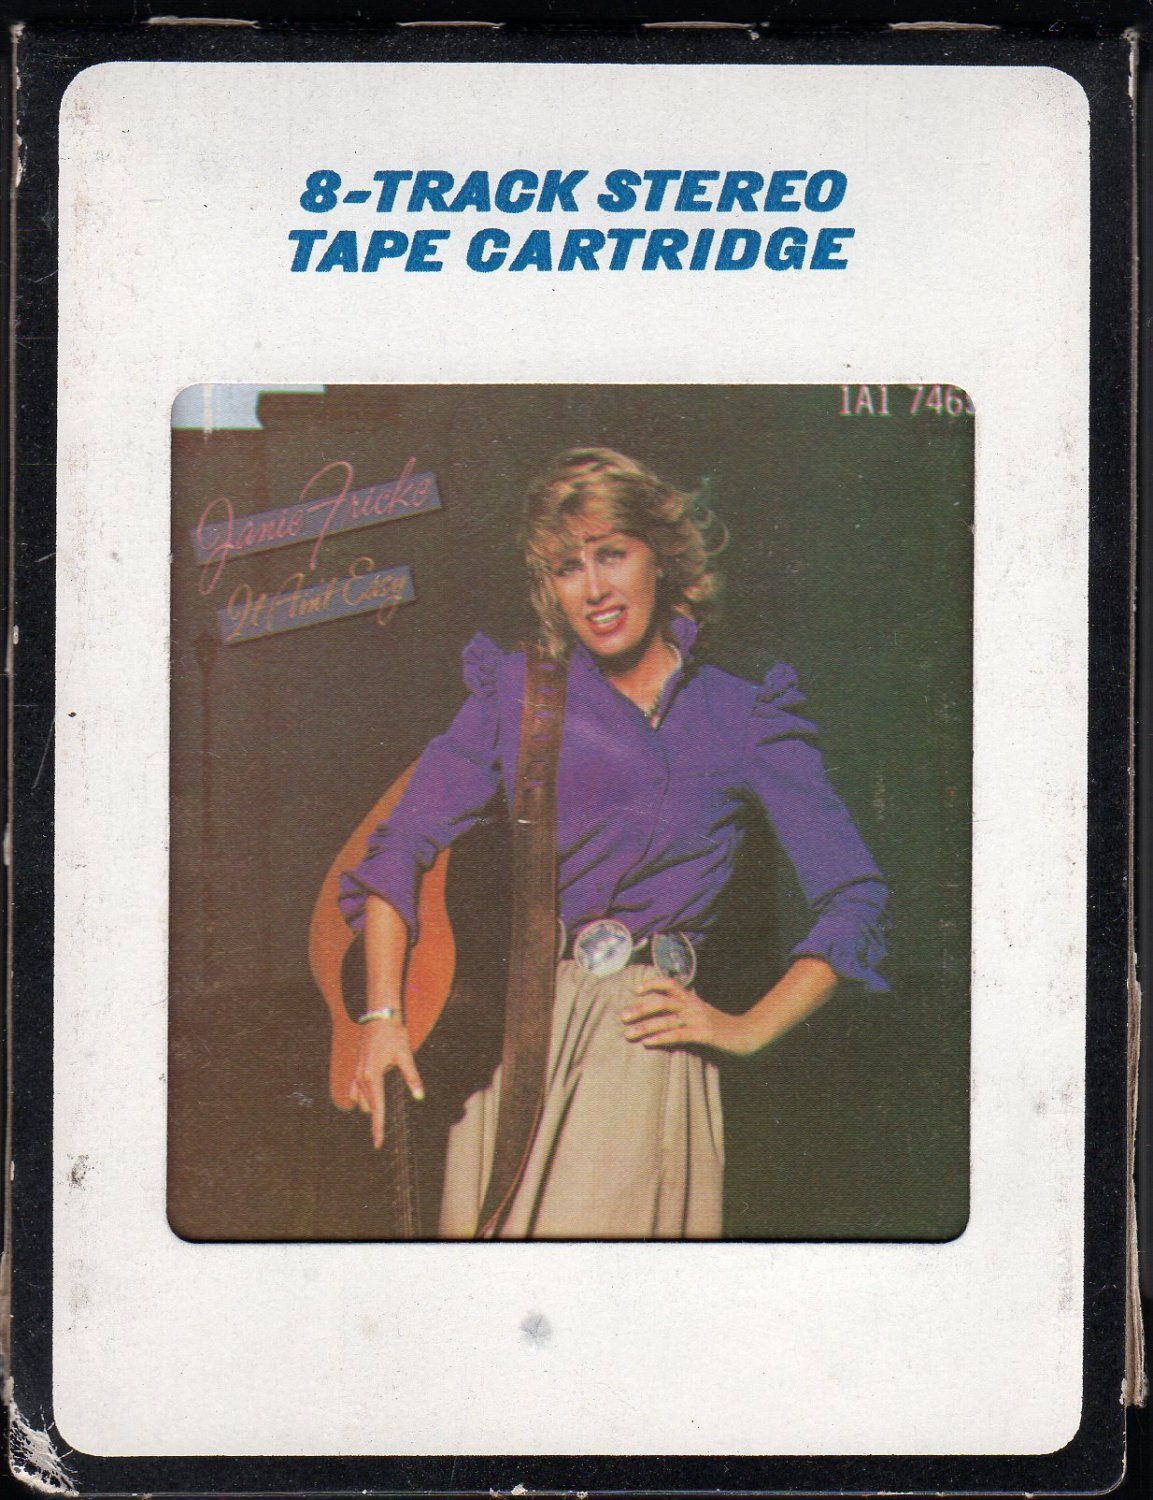 Janie Fricke - It Ain't Easy 1982 CRC T7 8-track tape